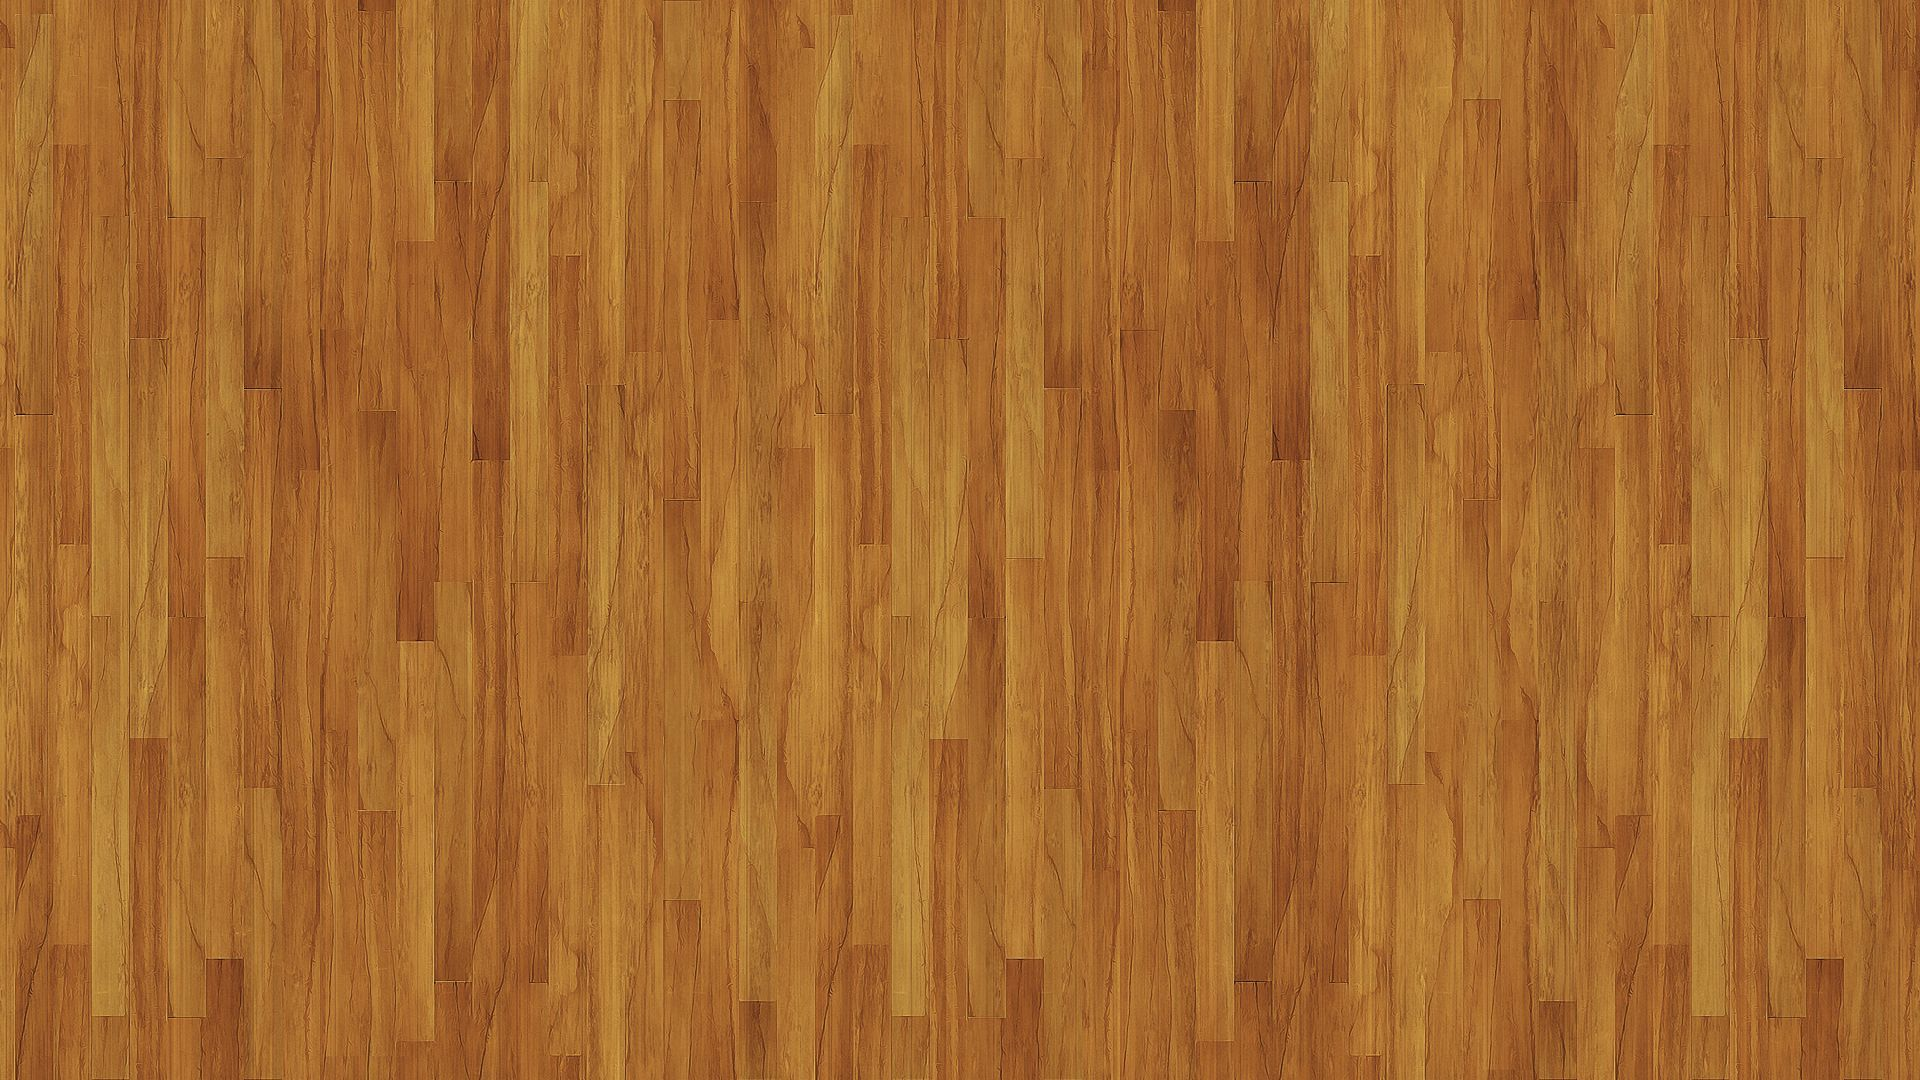 Wood Flooring Wallpaper Wallpapersafari